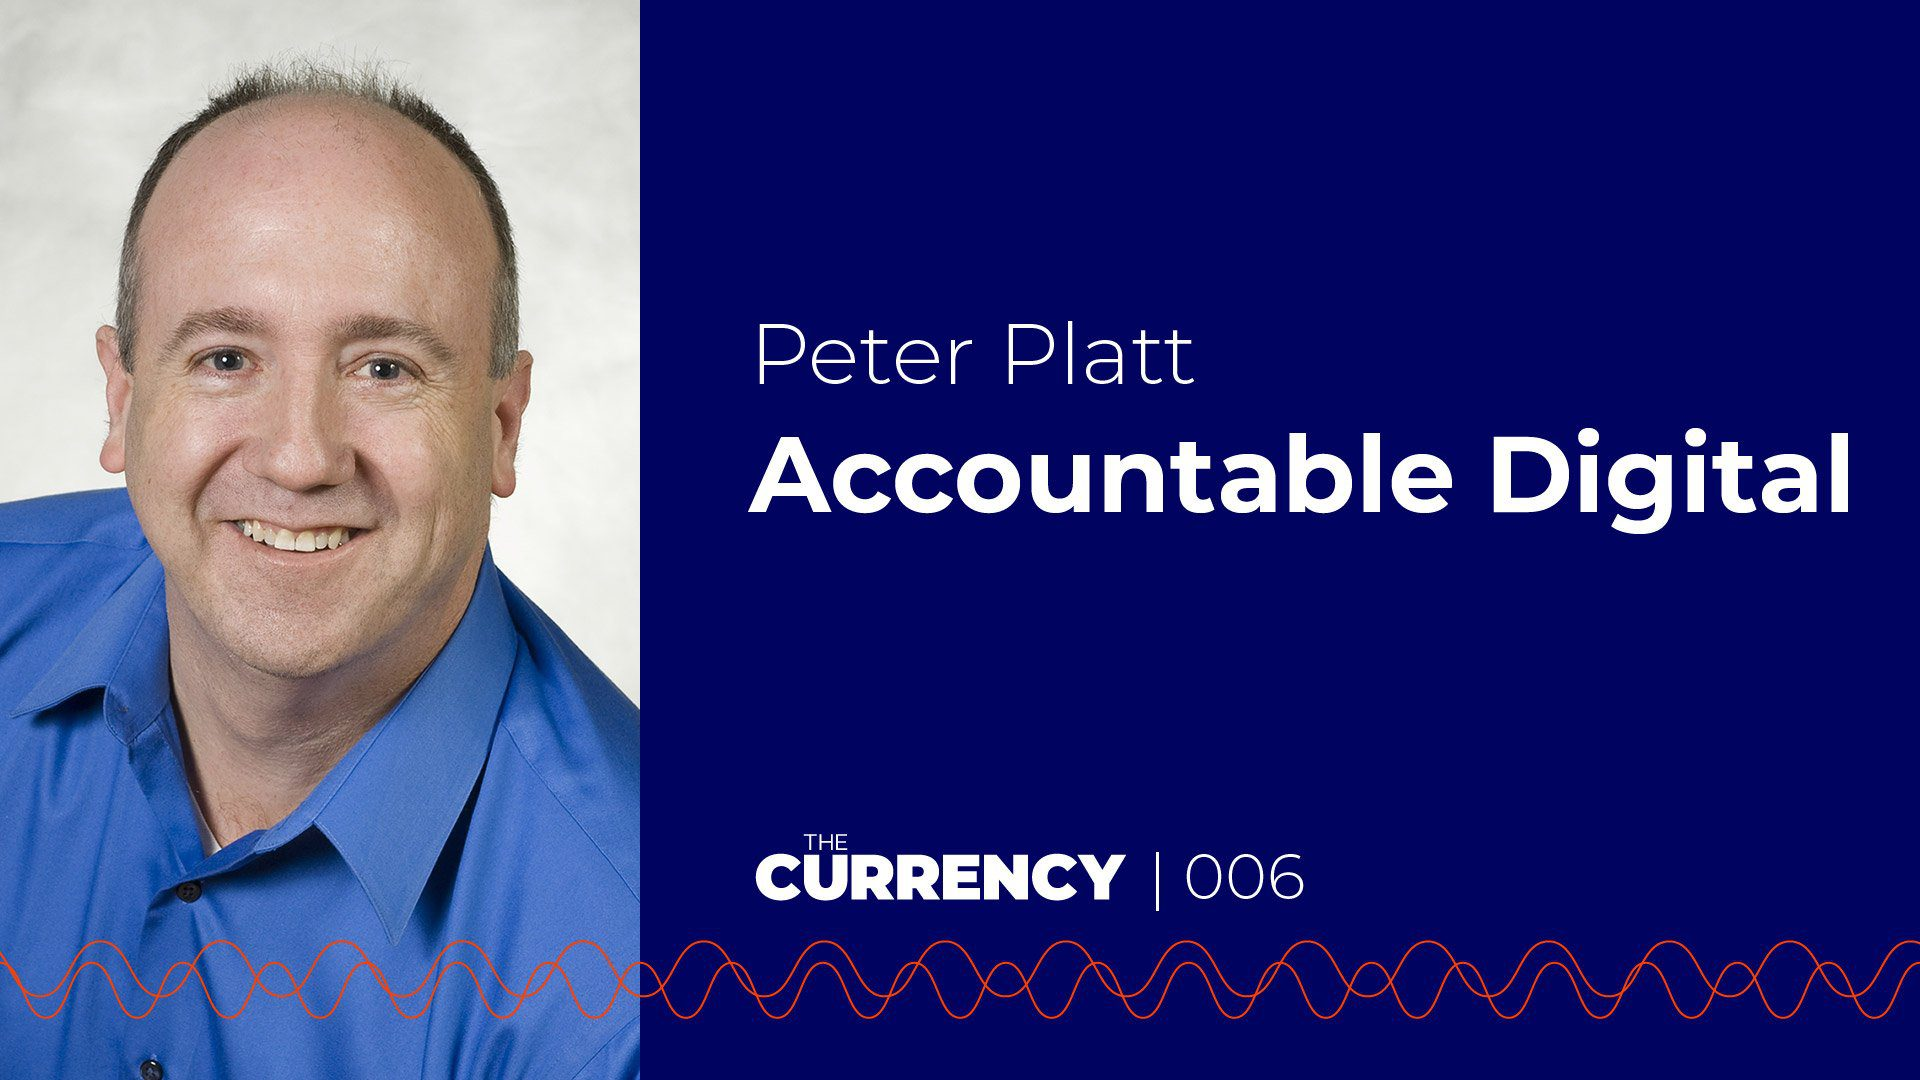 Peter Platt on The Currency podcast